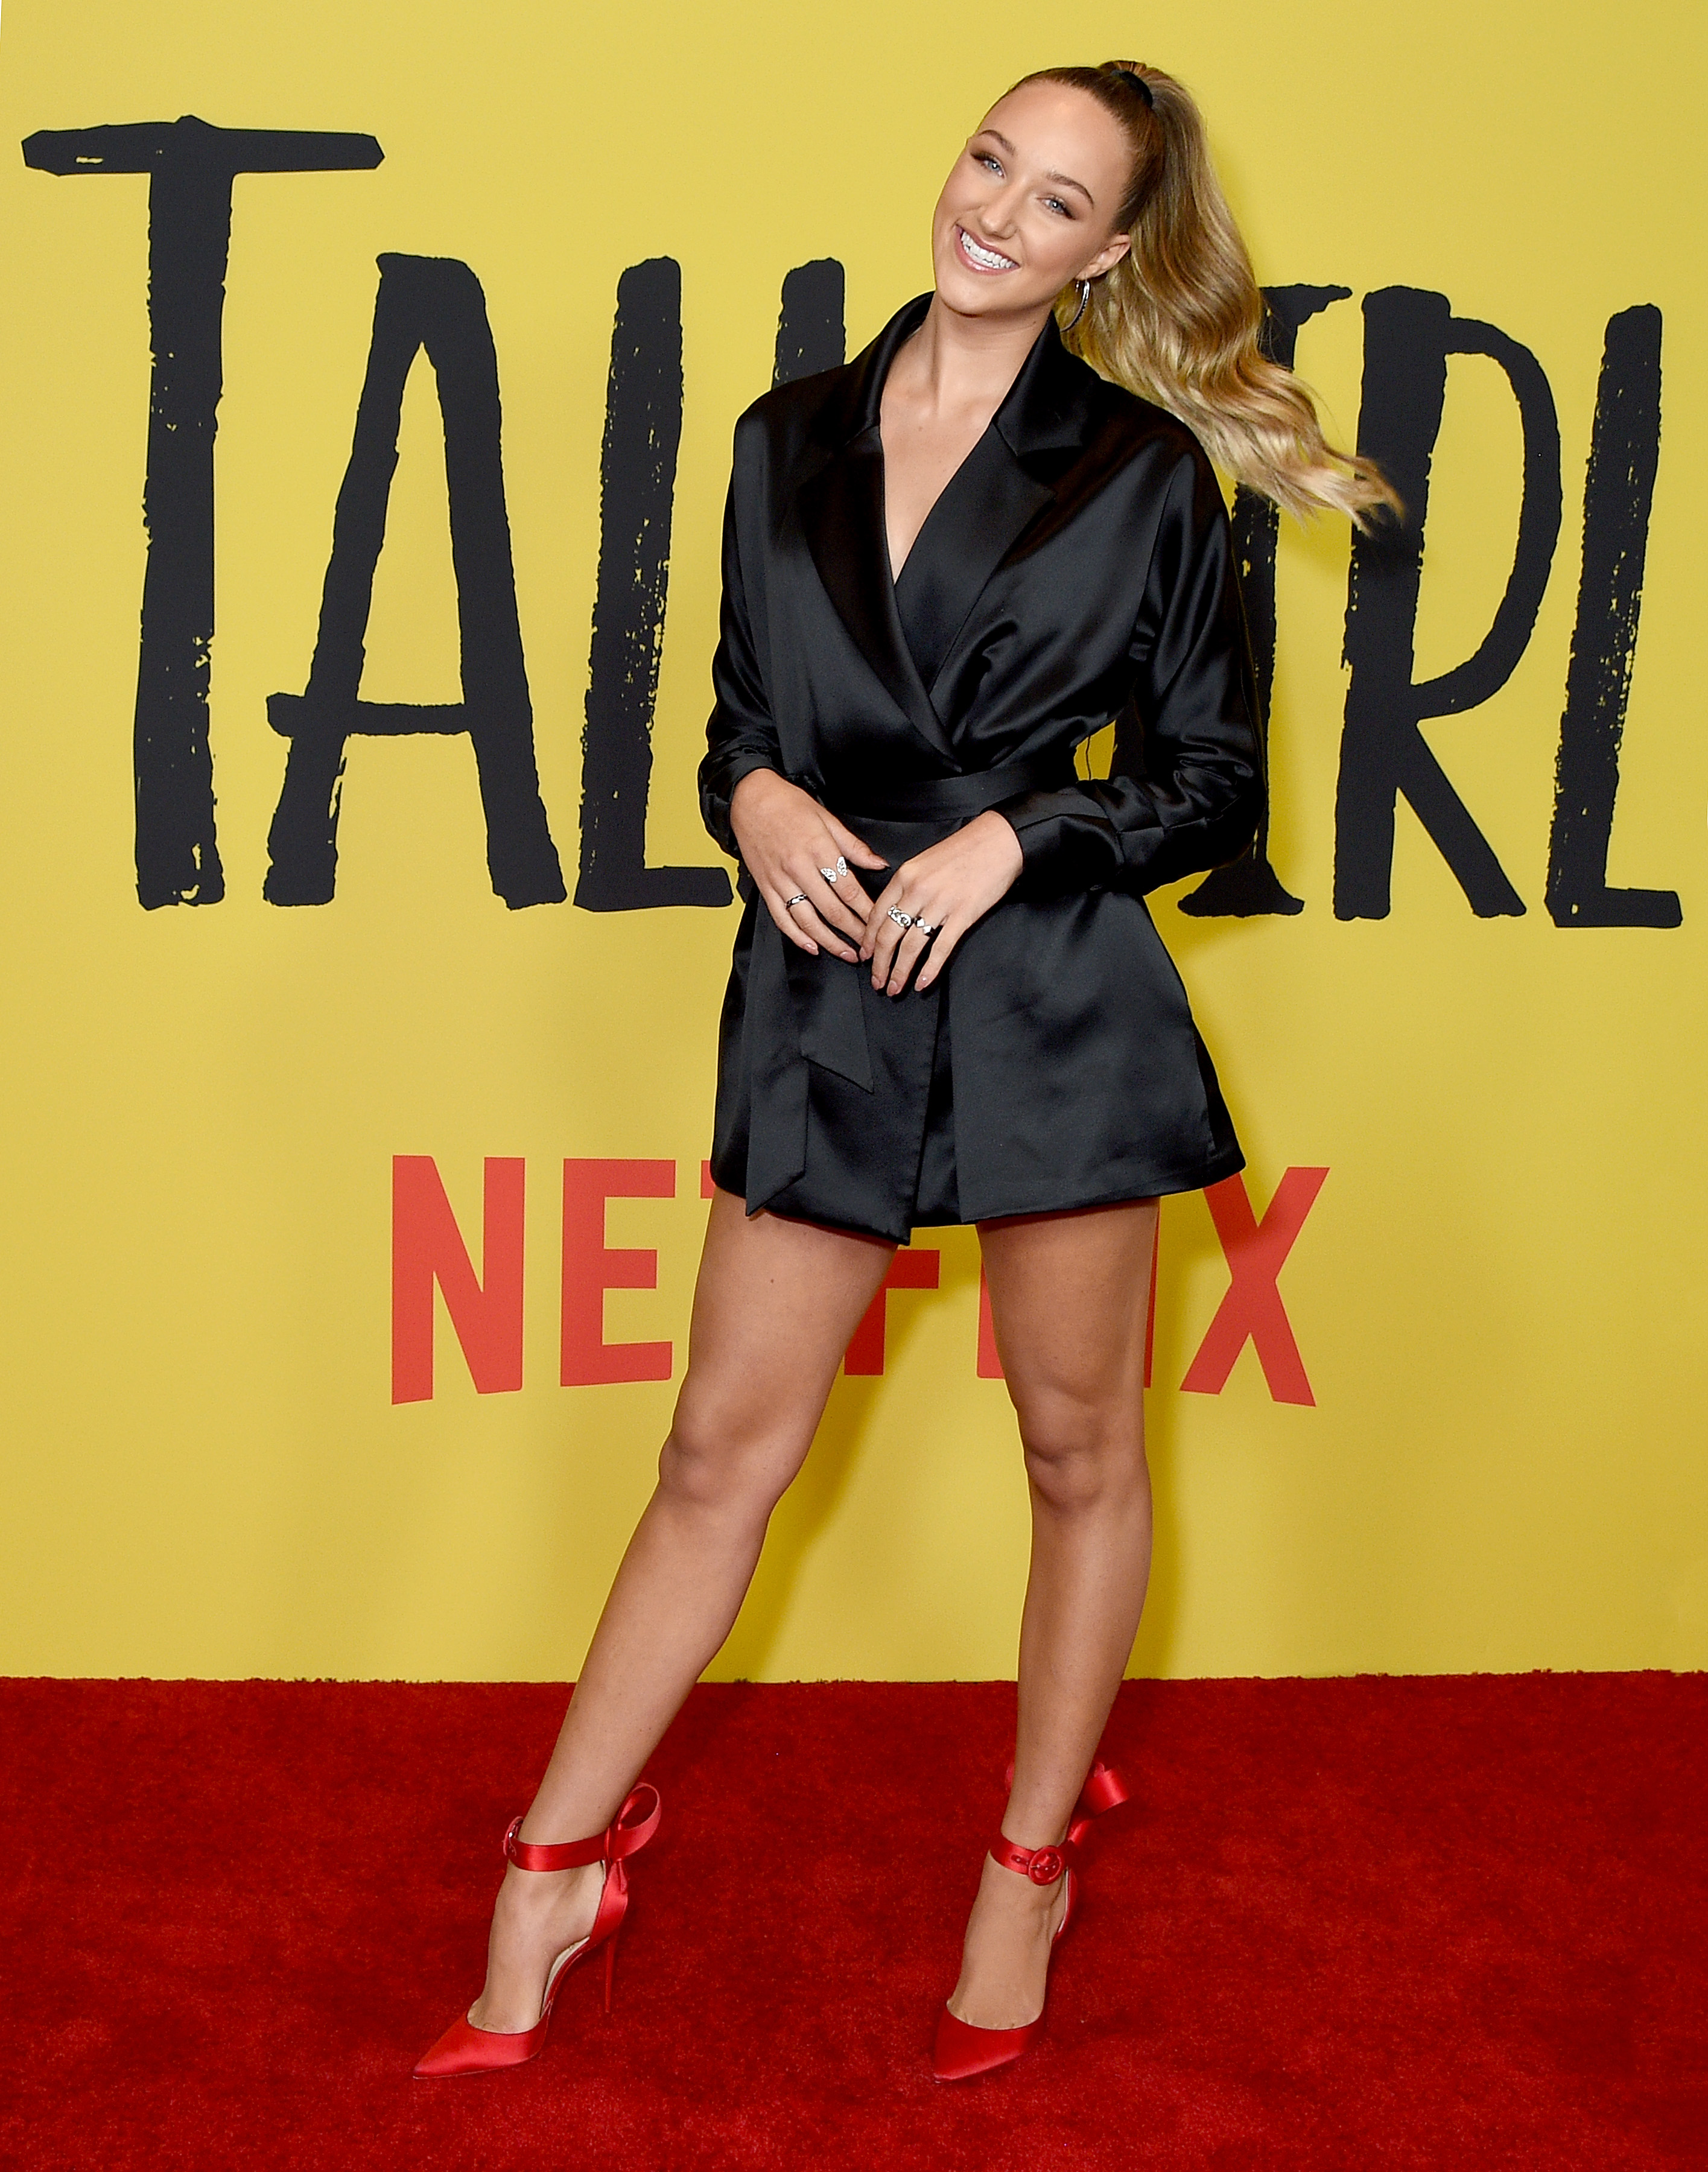 Tall Girl Film Streaming : streaming, Netflix's, Sparks, Outrage, Viewers, Protagonist, 'overreacting', About, Height, She's